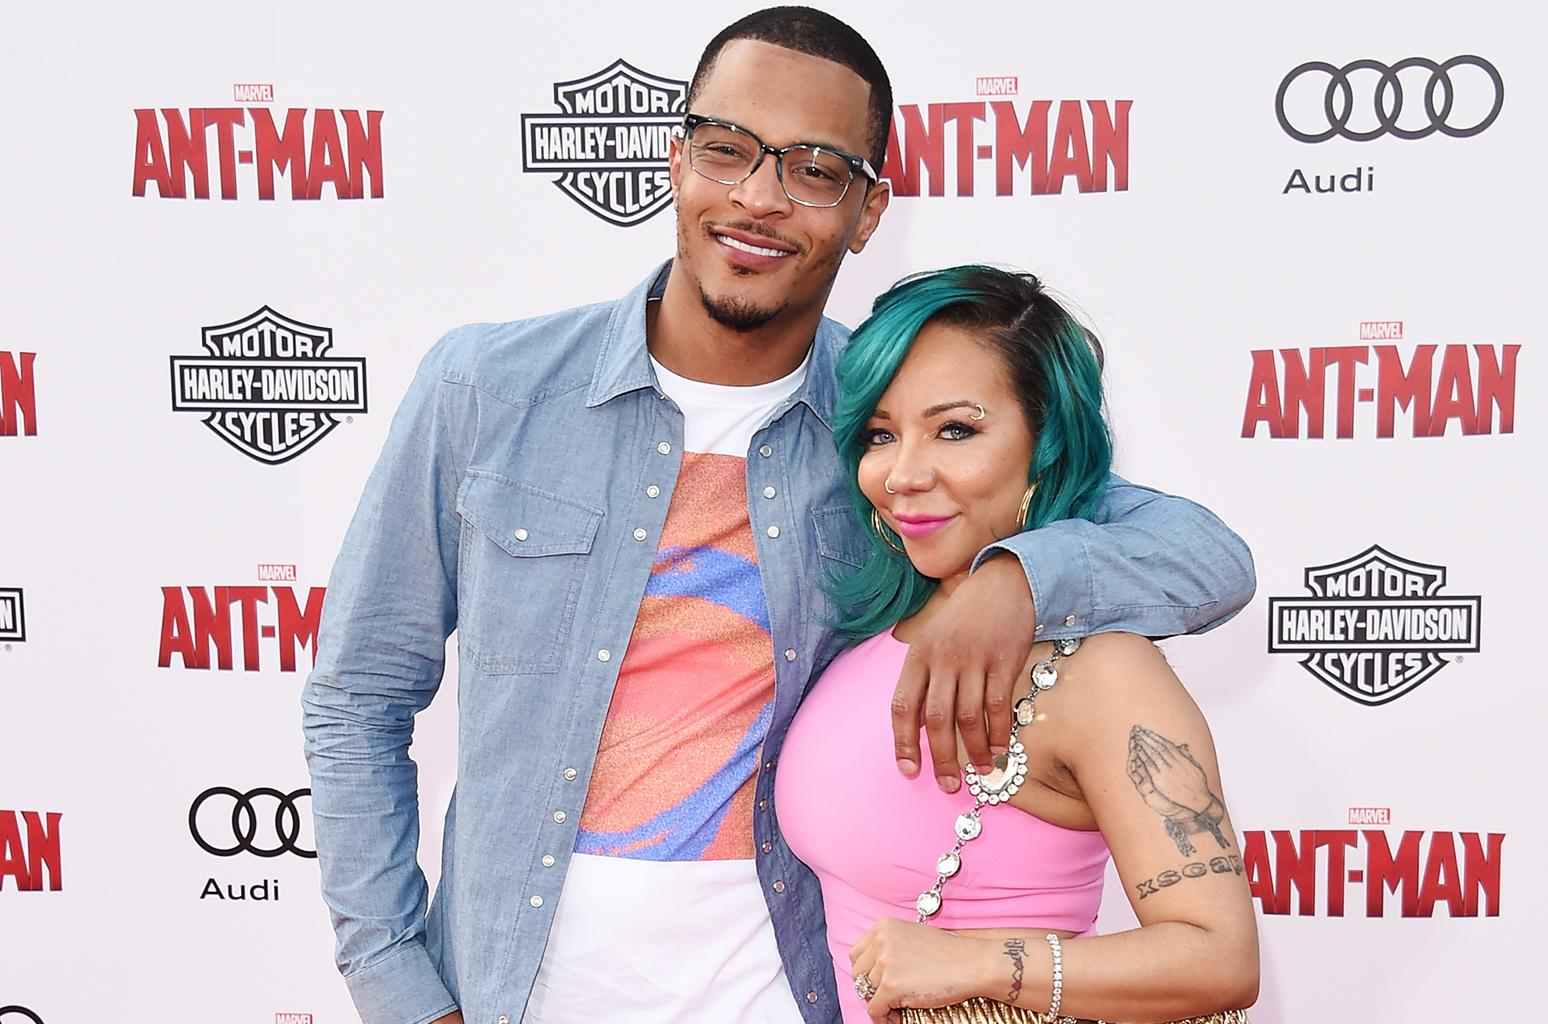 Tiny Harris Gushes Over T.I. With Cheeky Footage - Fans Criticize Her And Make Fun Of Tip's Assets